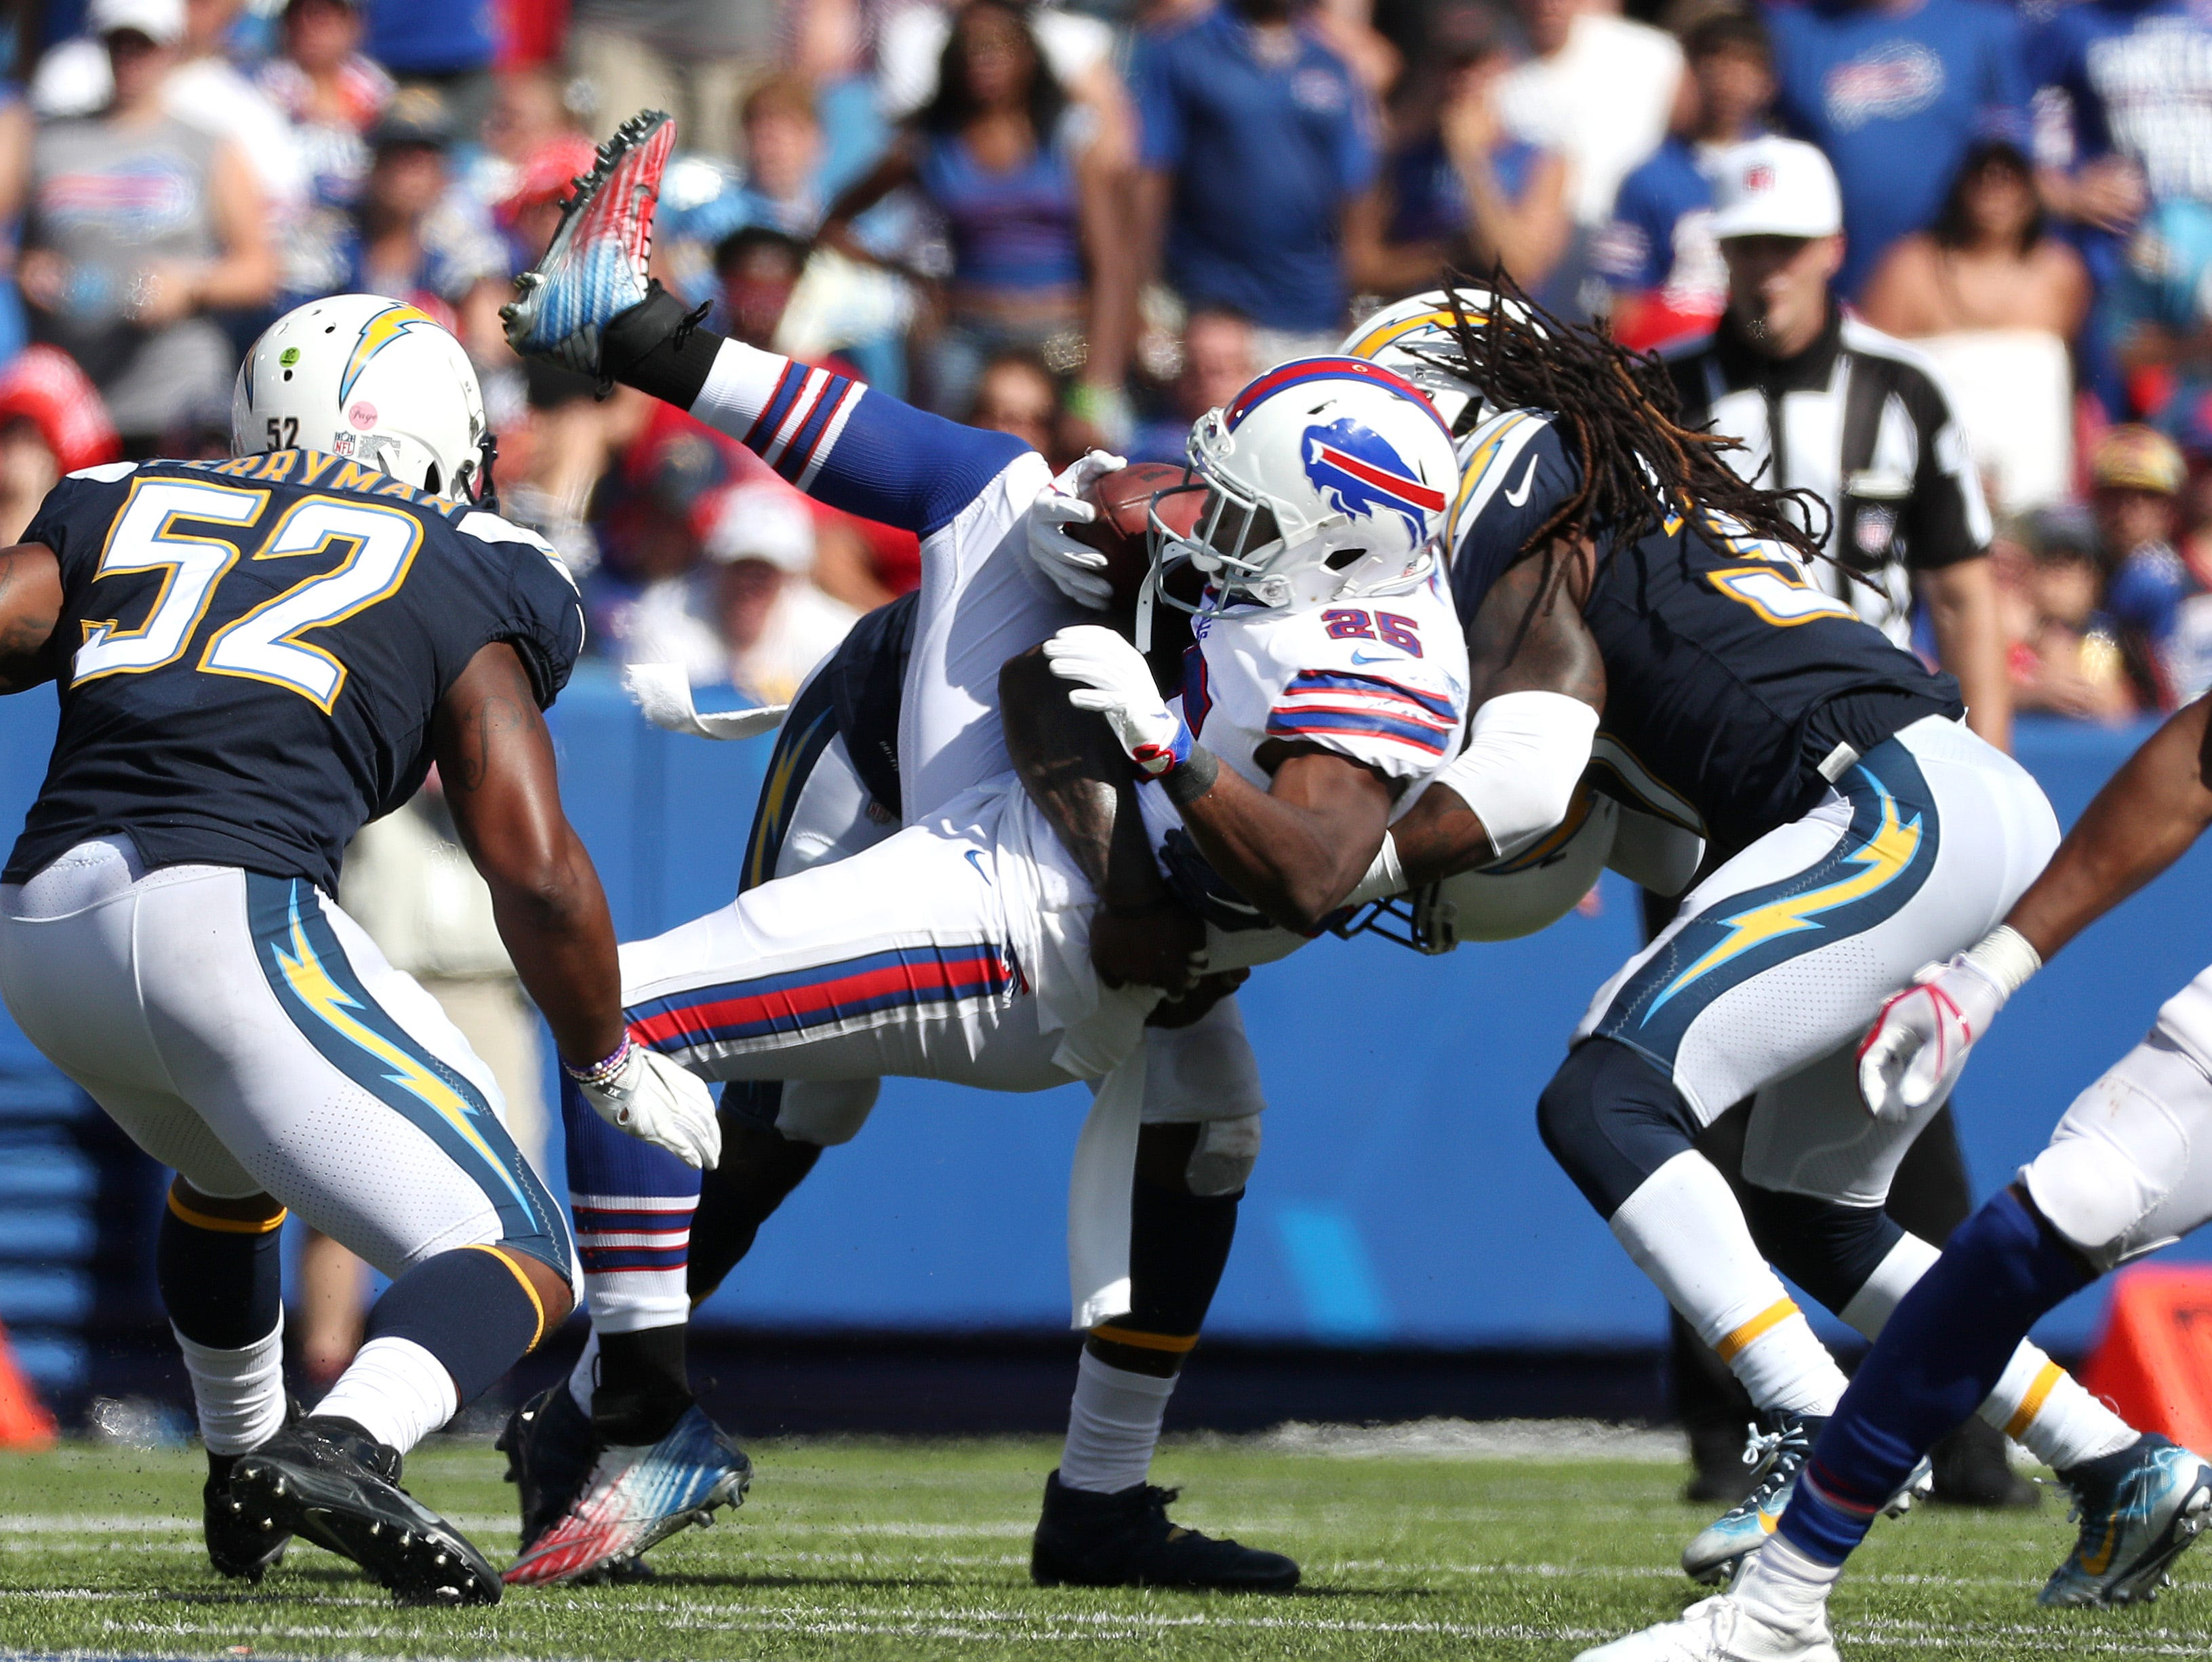 Bills running back LeSean McCoy was held to 39 yards in a 31-20 loss to Chargers.